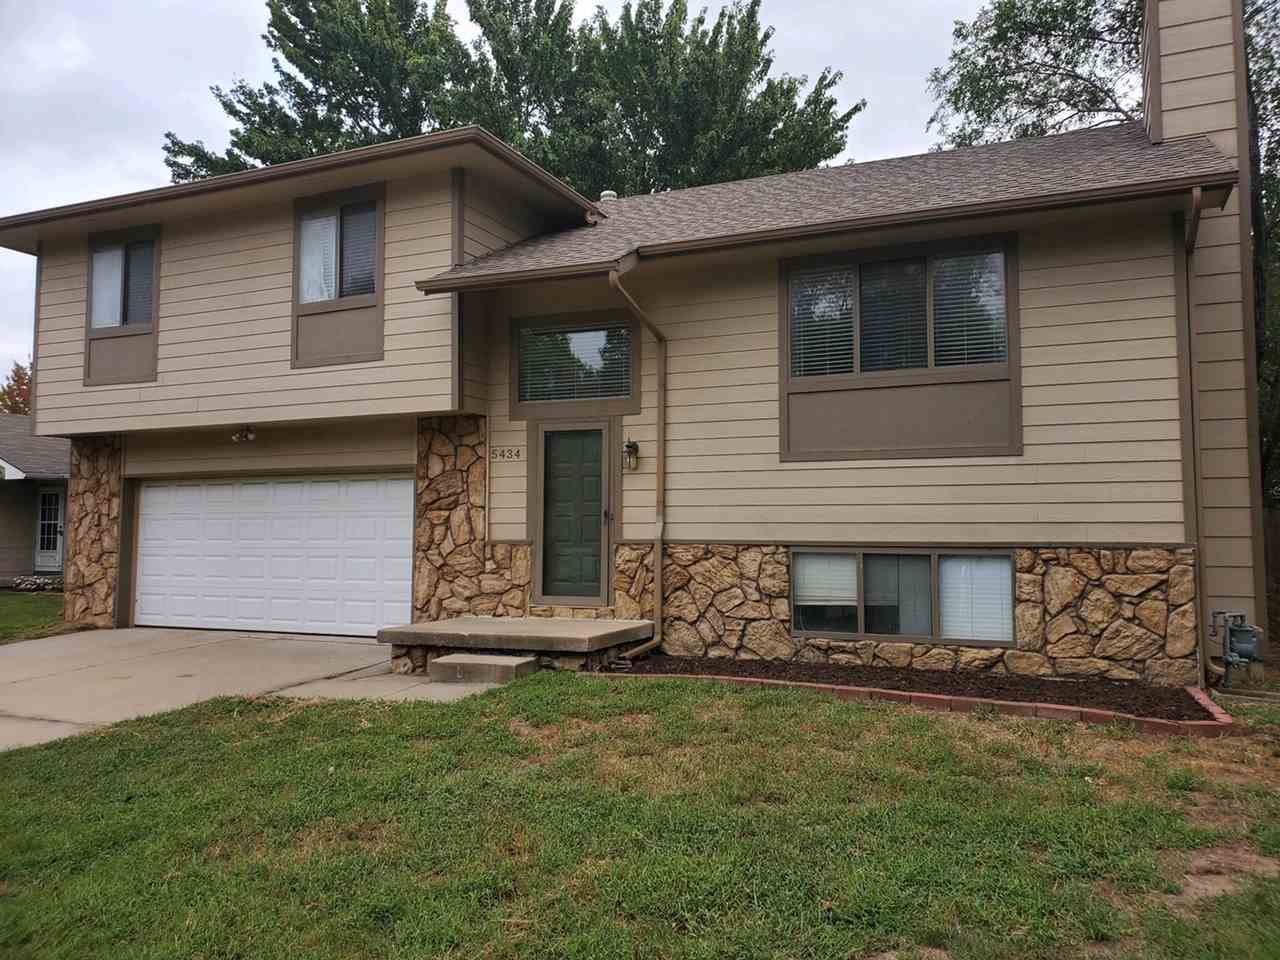 This charming home is in a much desired area and won't last long! This home is move in ready. New carpet throughout most of the home, nice tile floor in the kitchen and bathrooms. The kitchen has much desired white cabinets, and a large separate dining area for eating. The huge deck in the back will be great for entertaining. The view out basement has a fireplace in a second family room, for extra space. The laundry room, has extra storage and a 3/4 bath in the basement. Schedule your showing today!